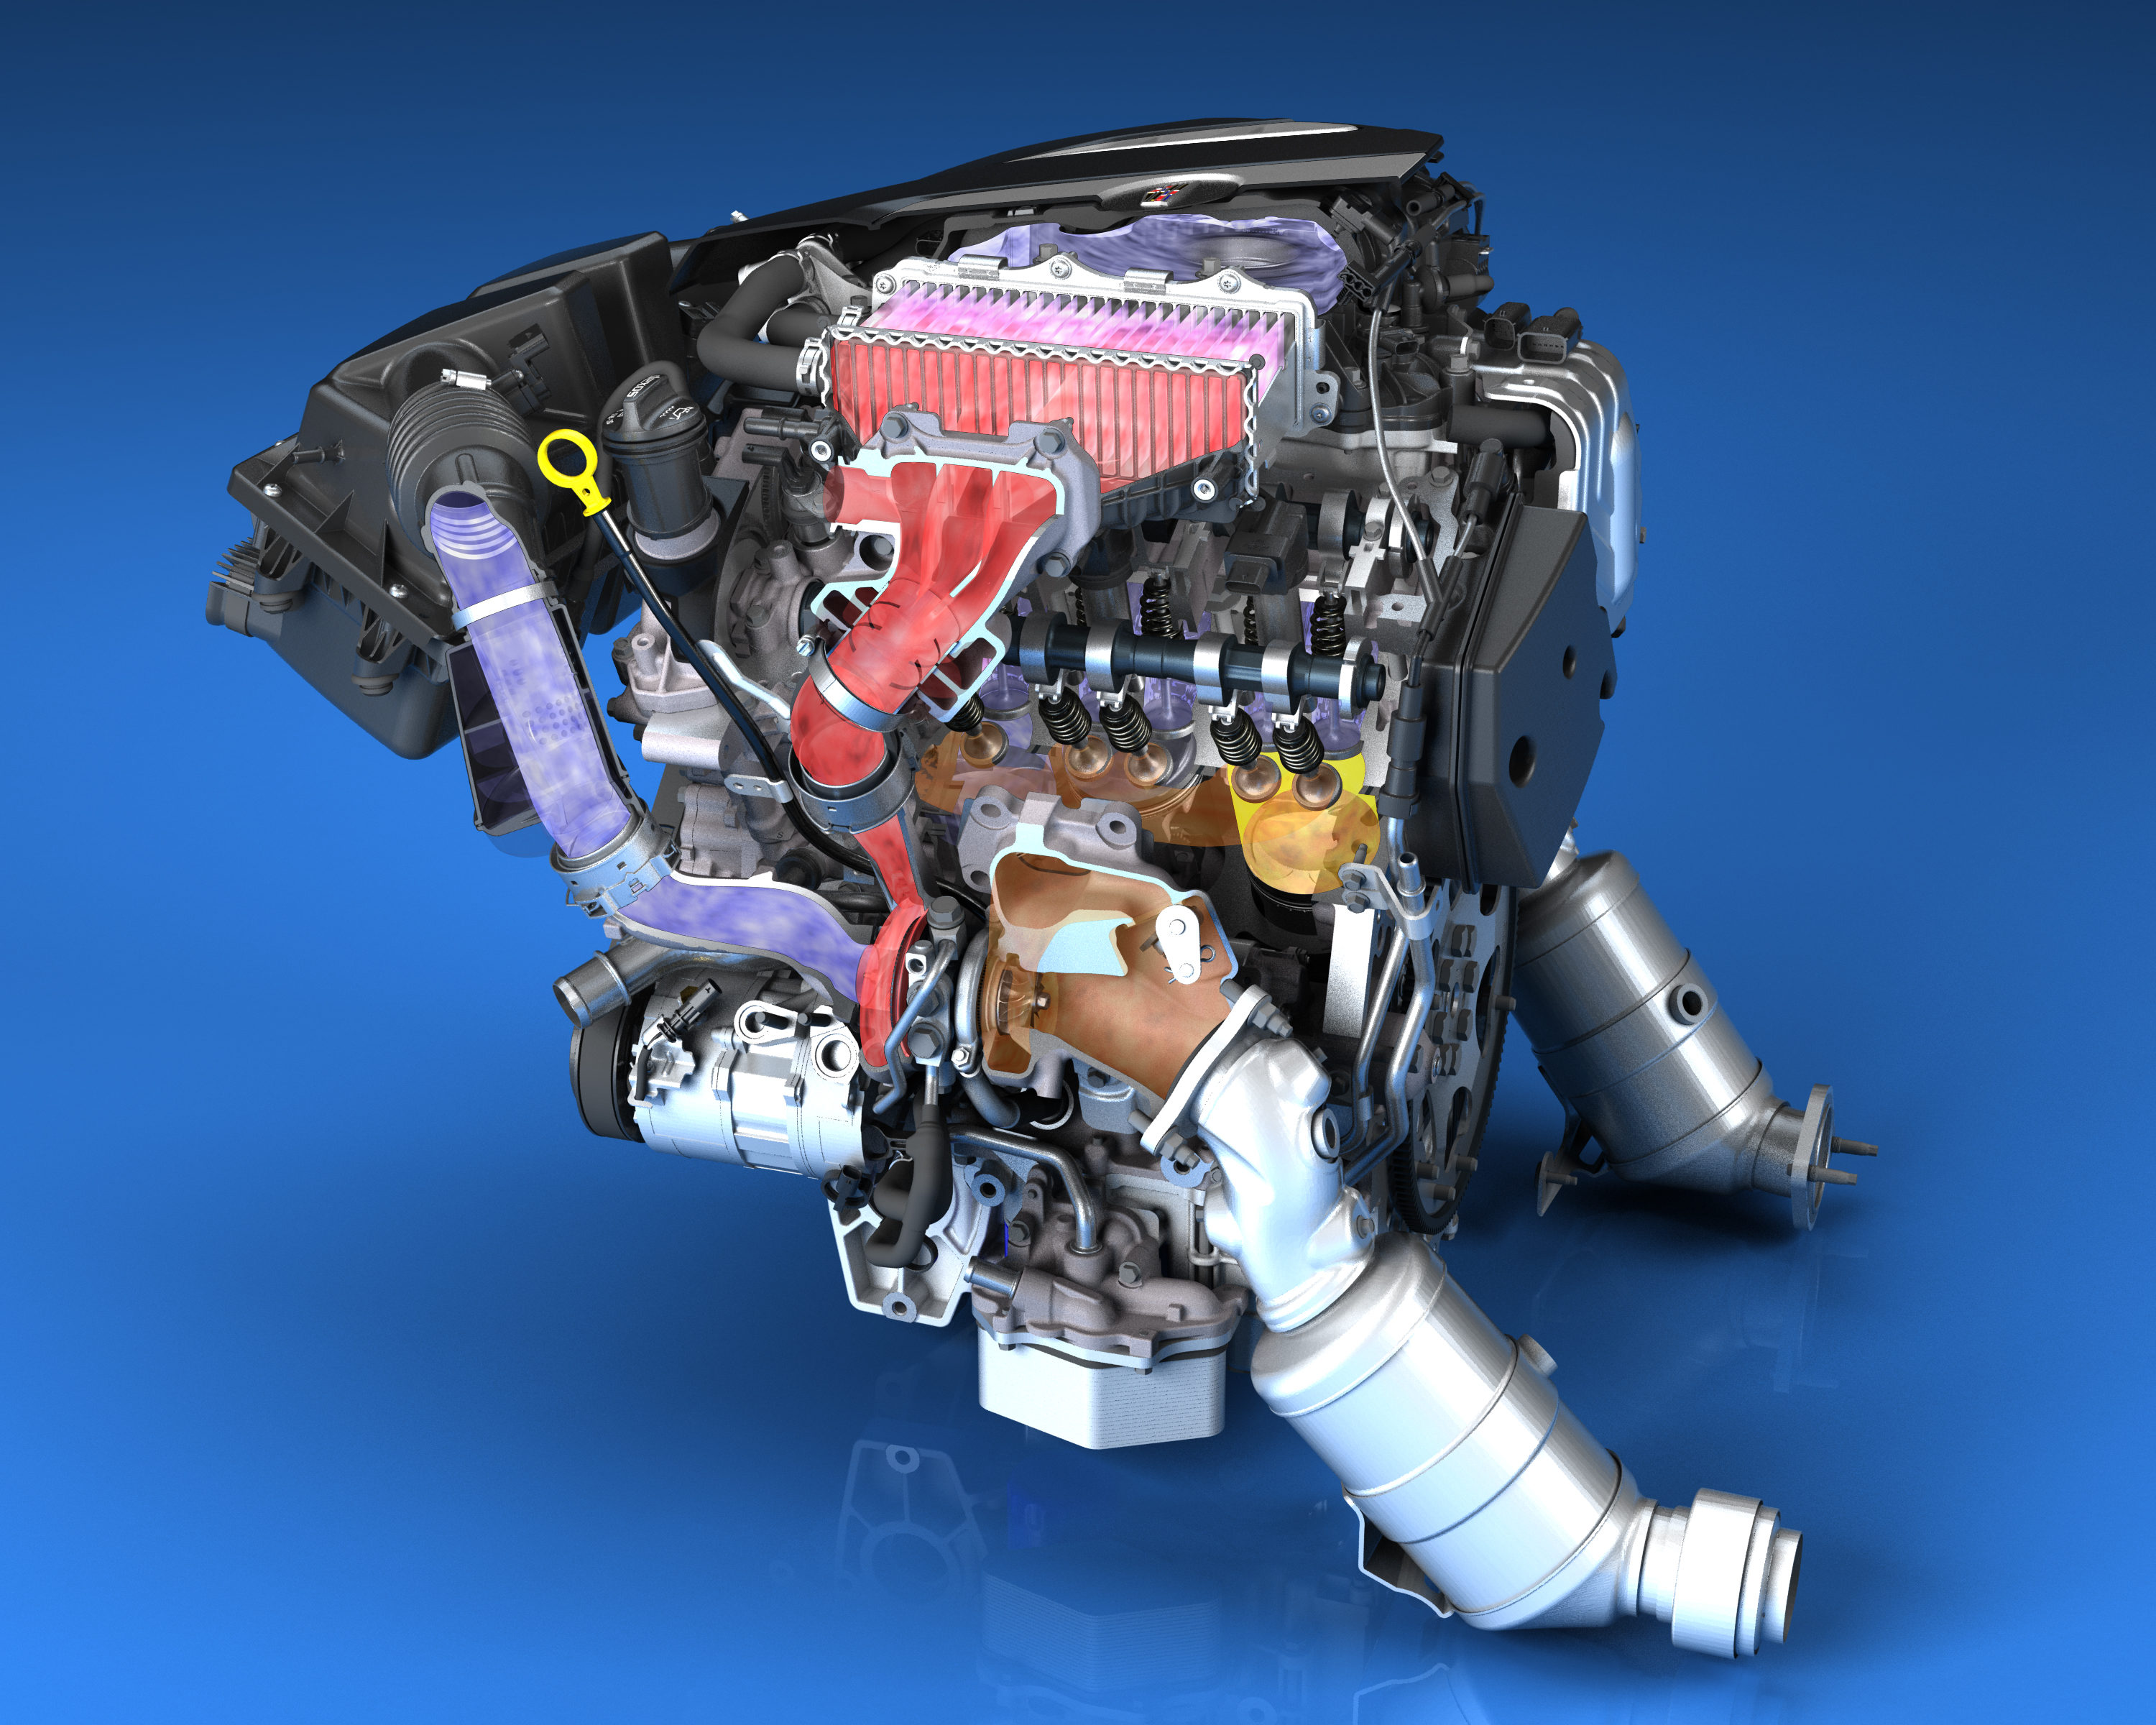 Cadillac Next-Gen V-6 Engines Led by 3 0L Twin Turbo